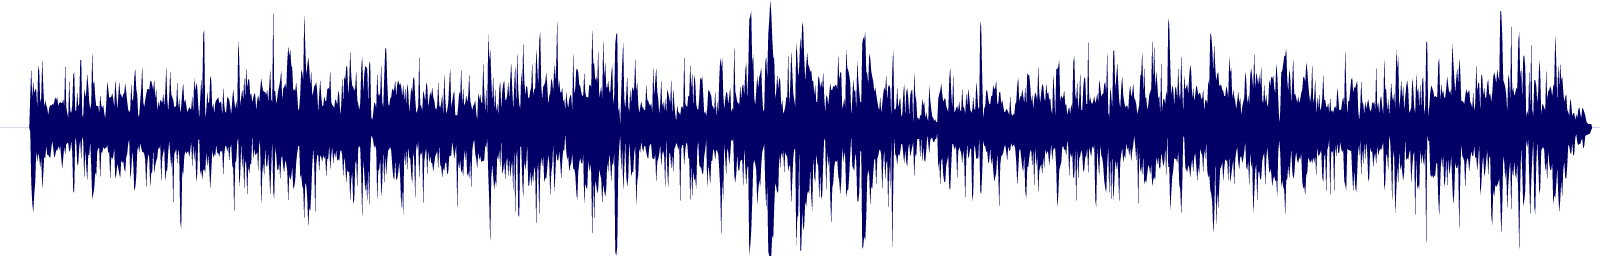 waveform of track #129576